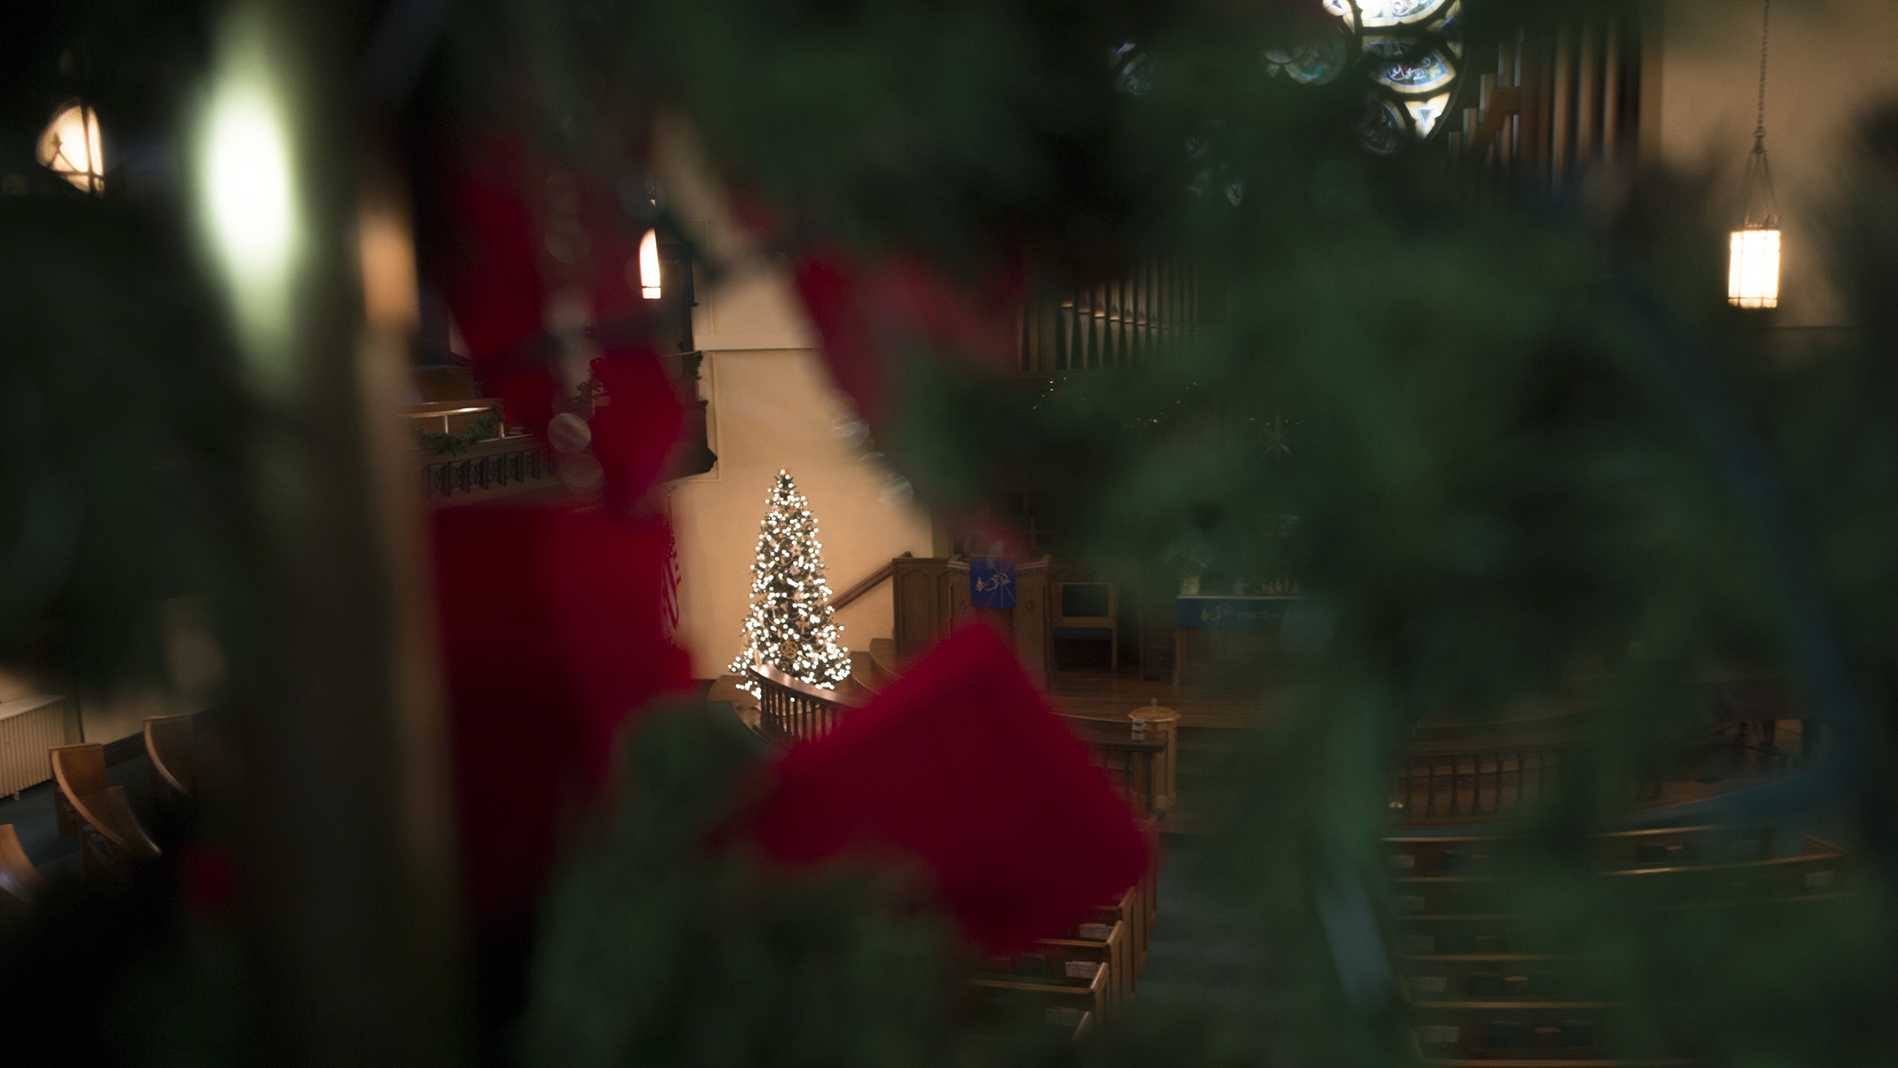 A Christmas tree is seen at First United Methodist Church on Wednesday, Nov. 29, 2017. (Lily Smith/The Daily Iowan)